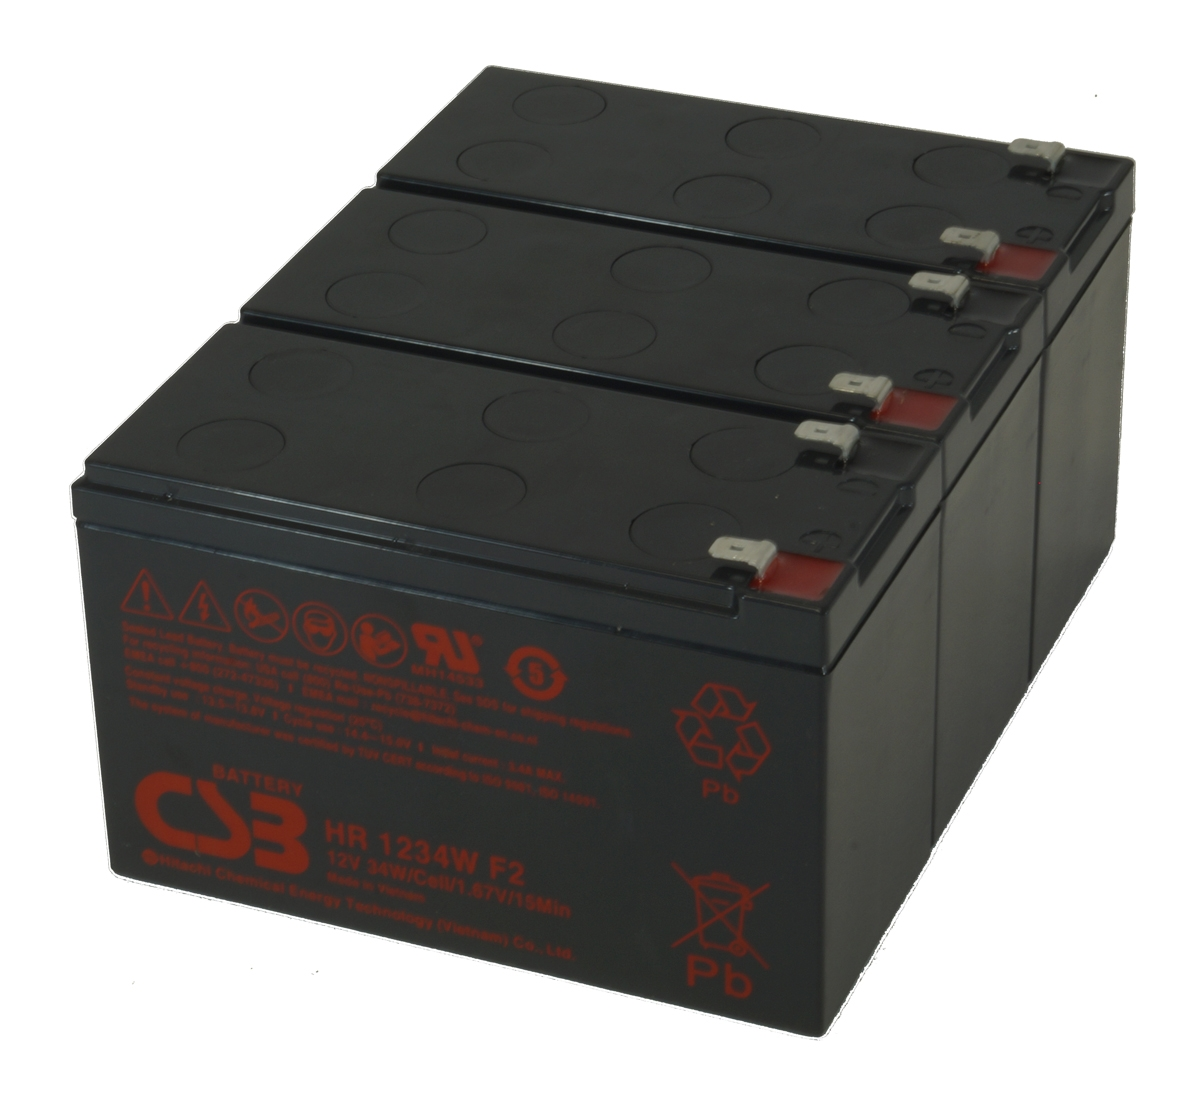 UPS vervangings batterij 3 x HR1234WF2 CSB Battery